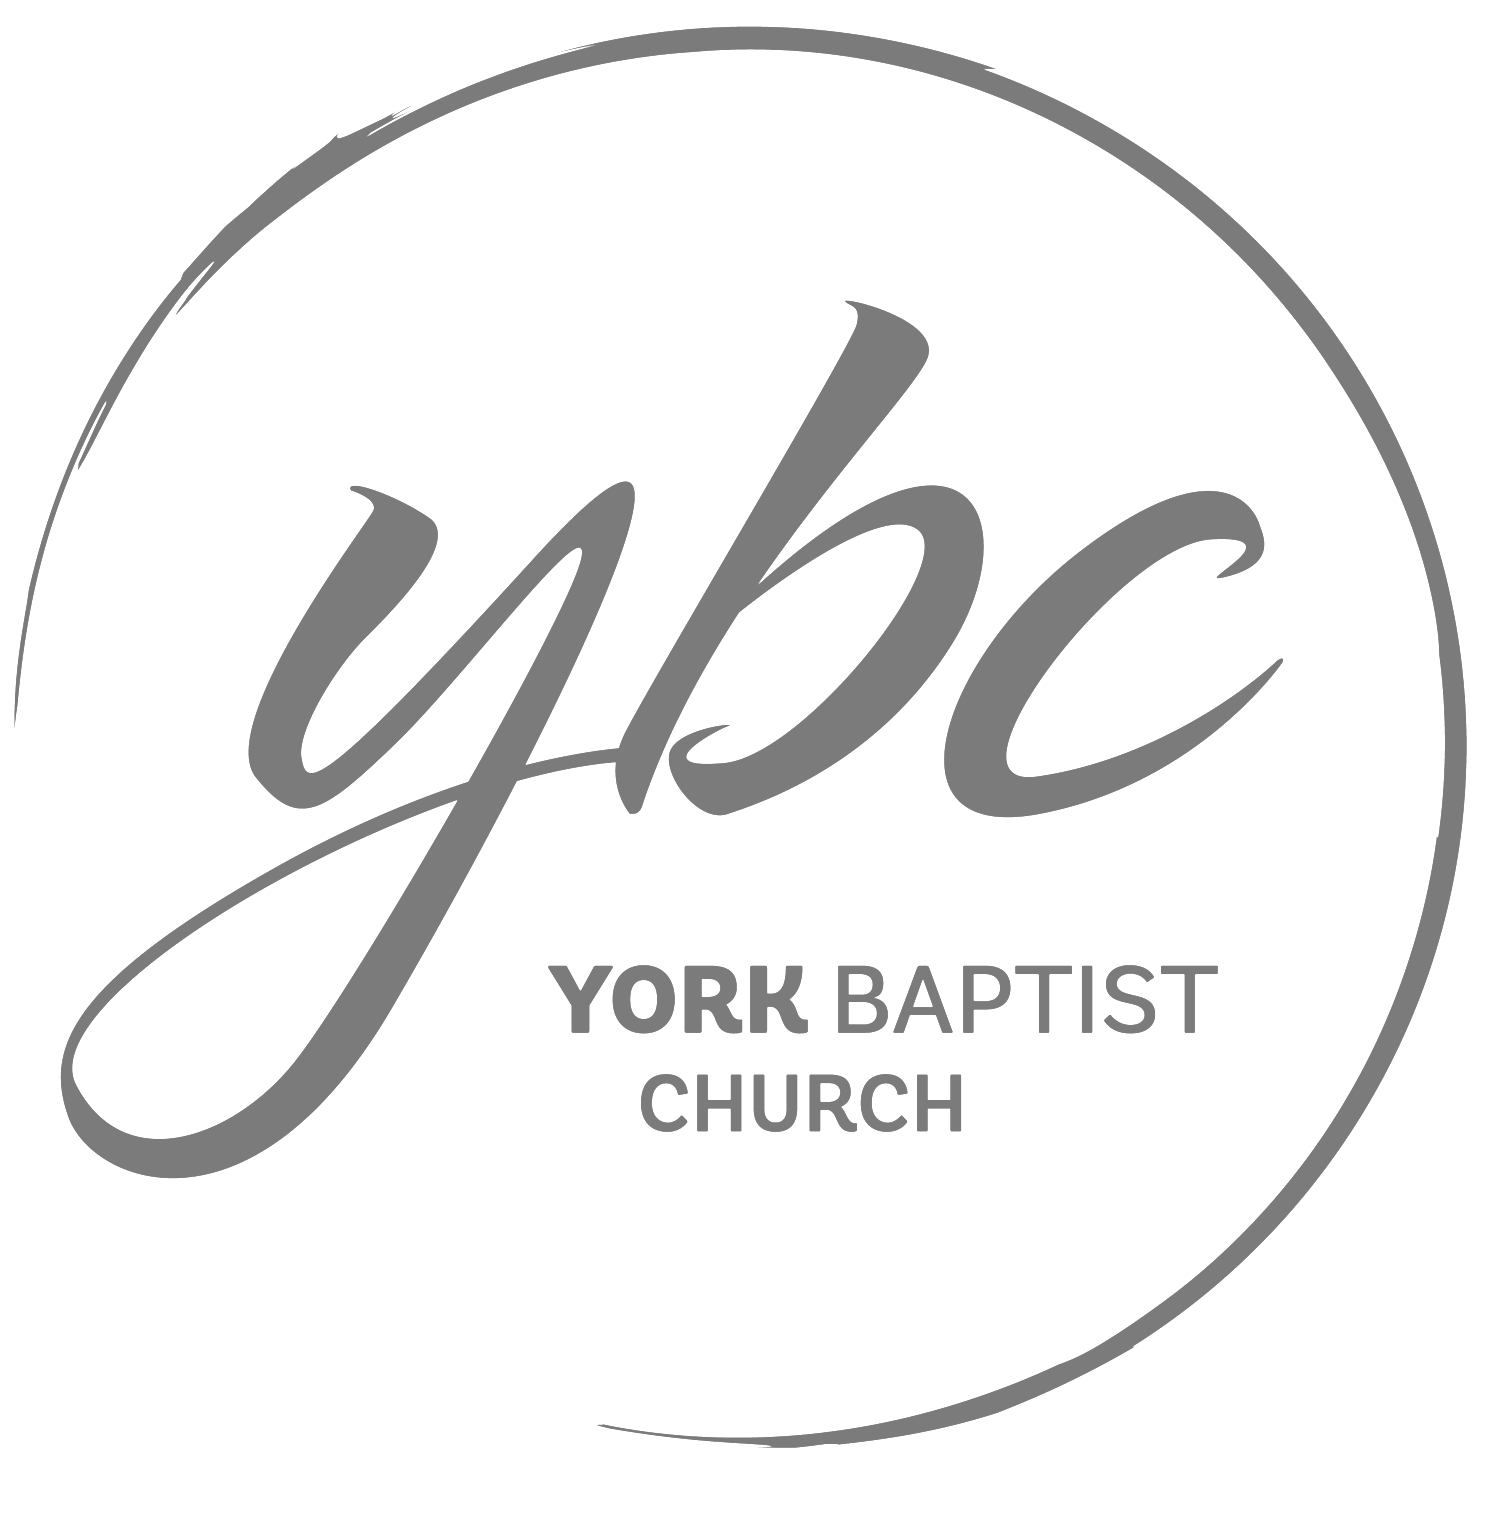 York Baptist Church